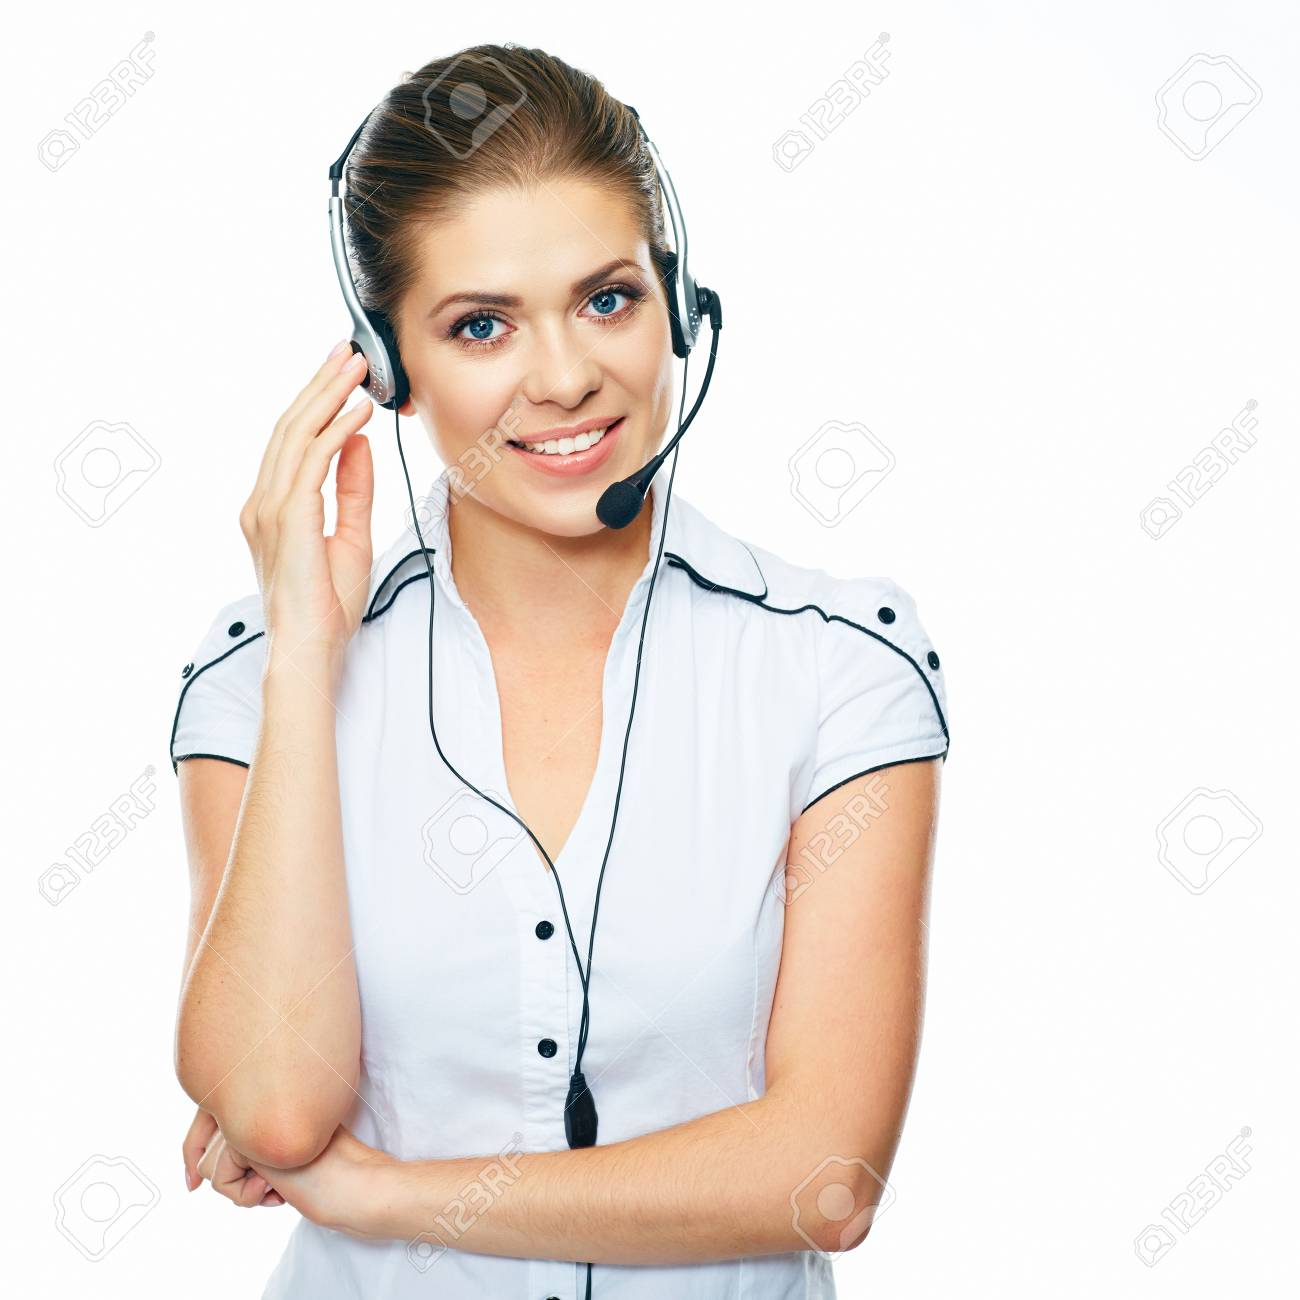 Woman Call Center Operator White Background Isolated Stock Photo 1300x1300